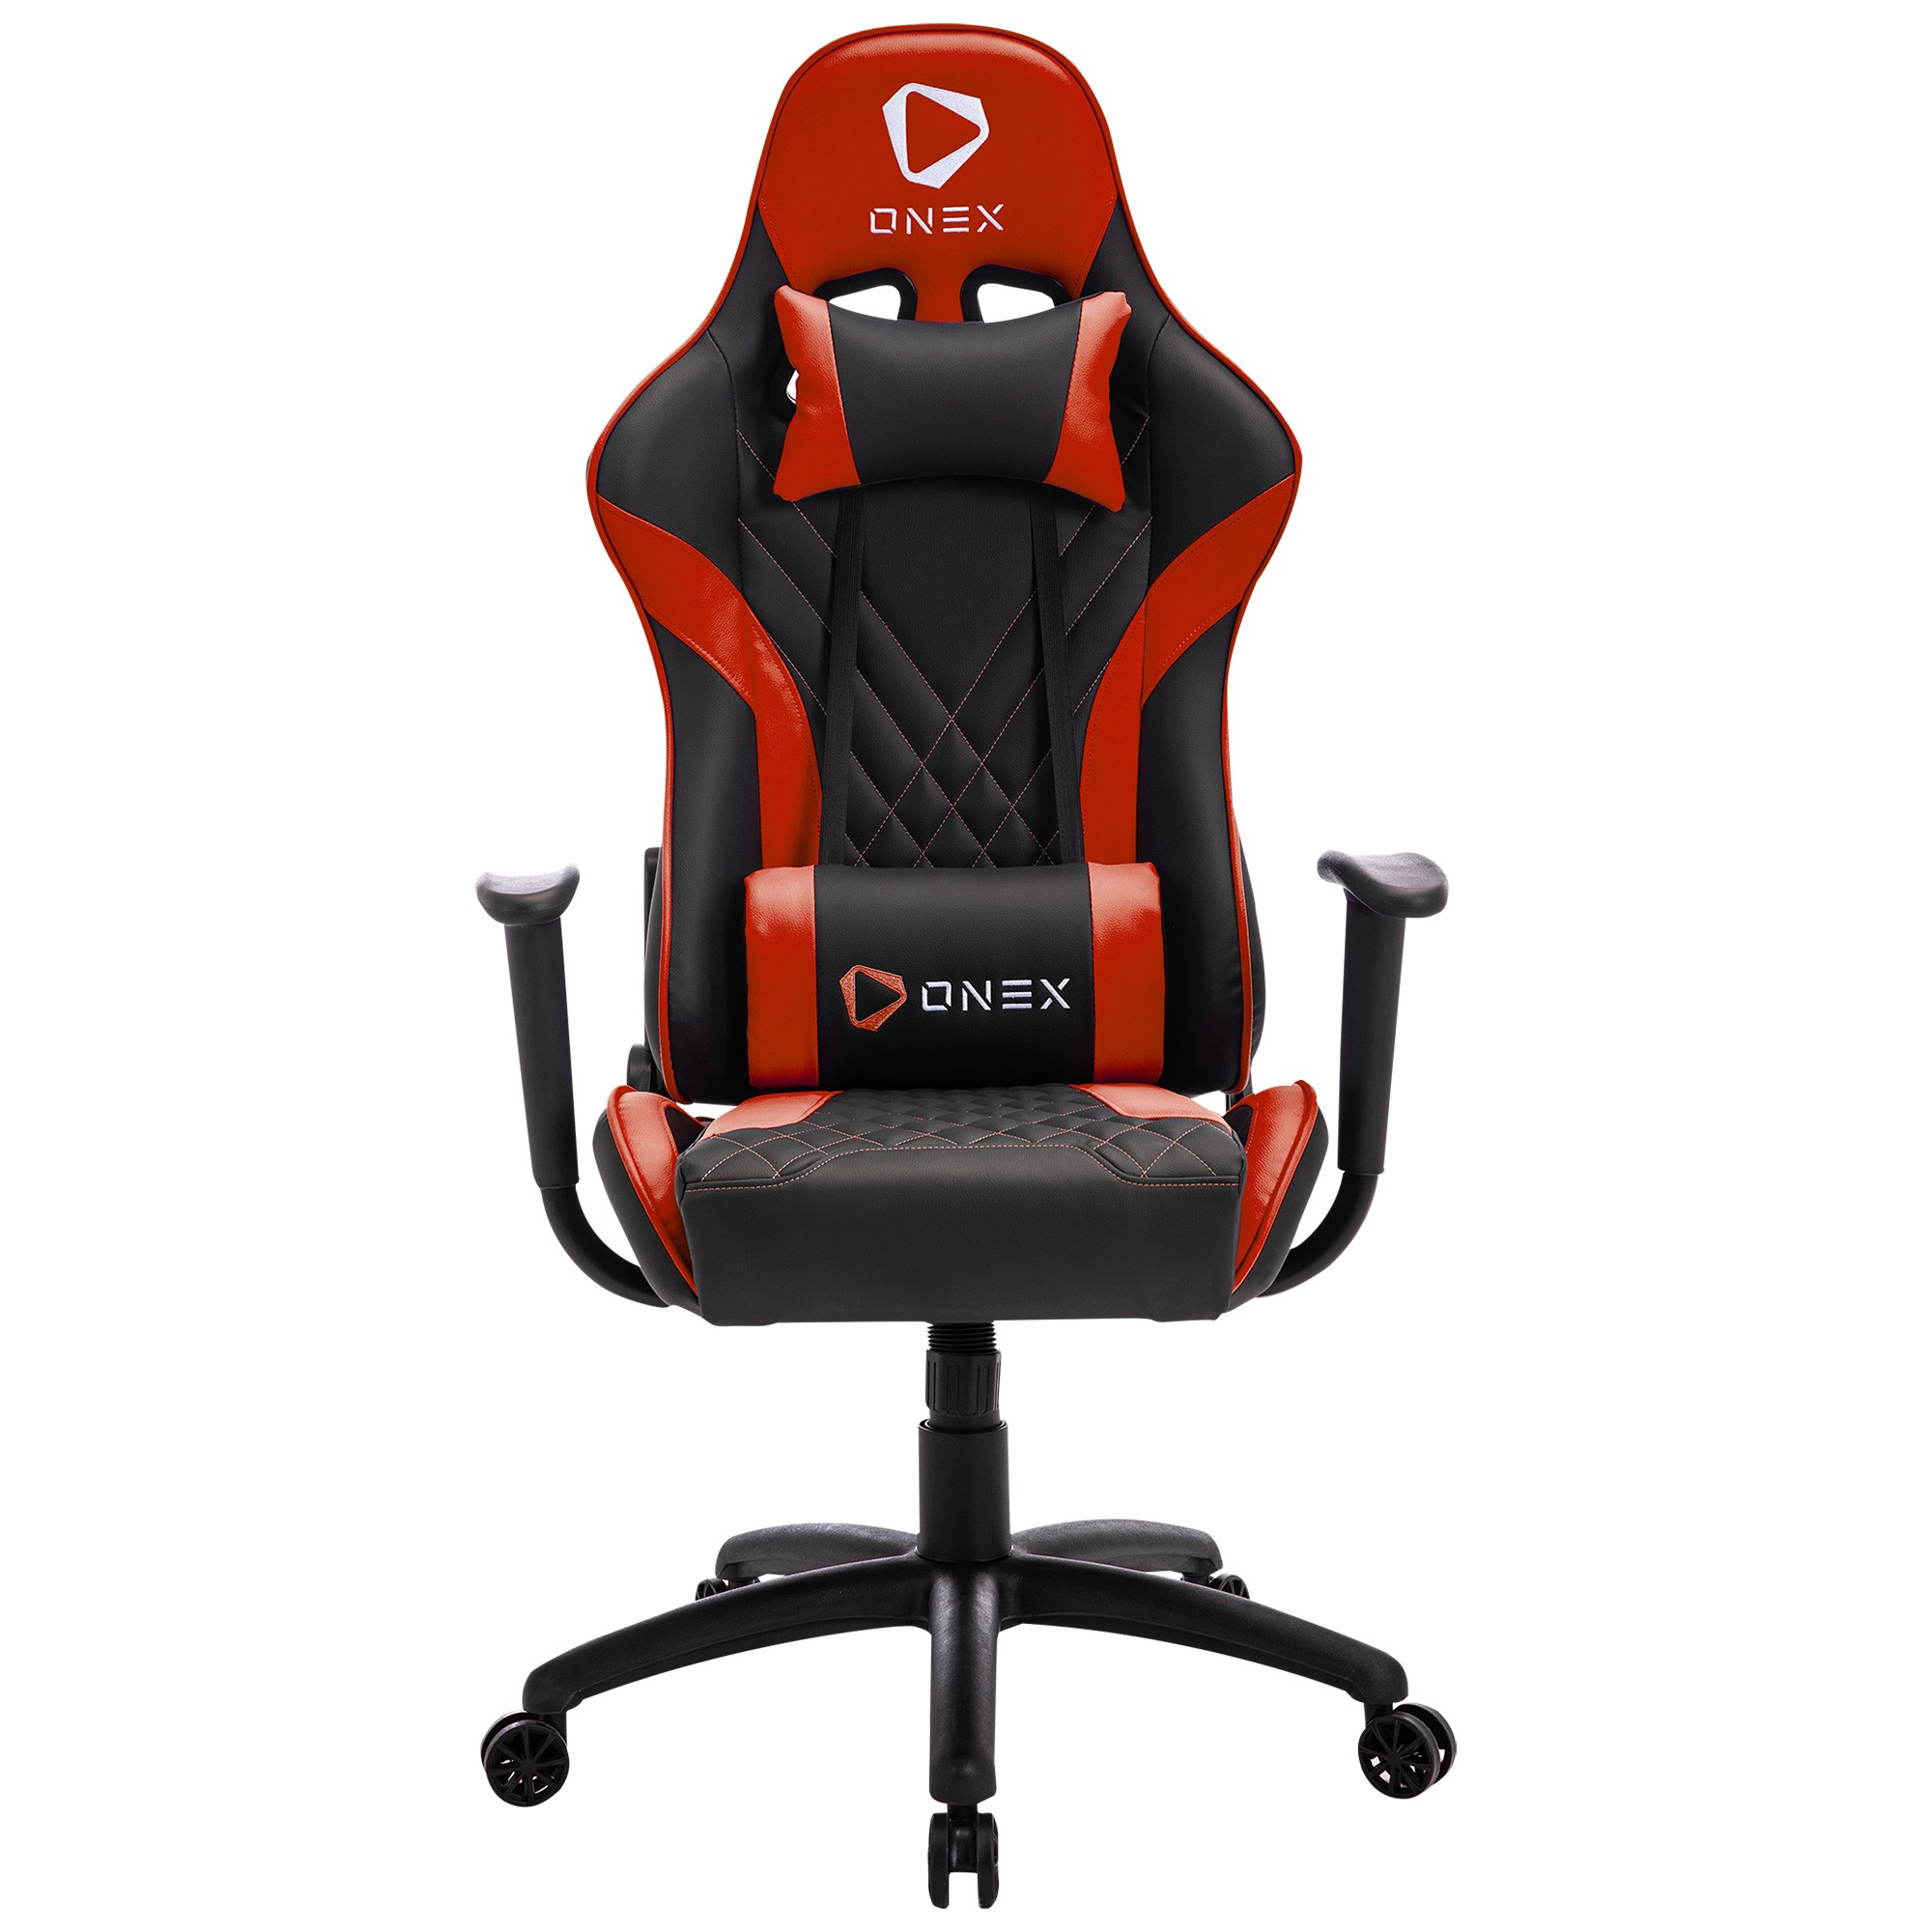 ONEX GX2 Gaming Chair, Black / Red